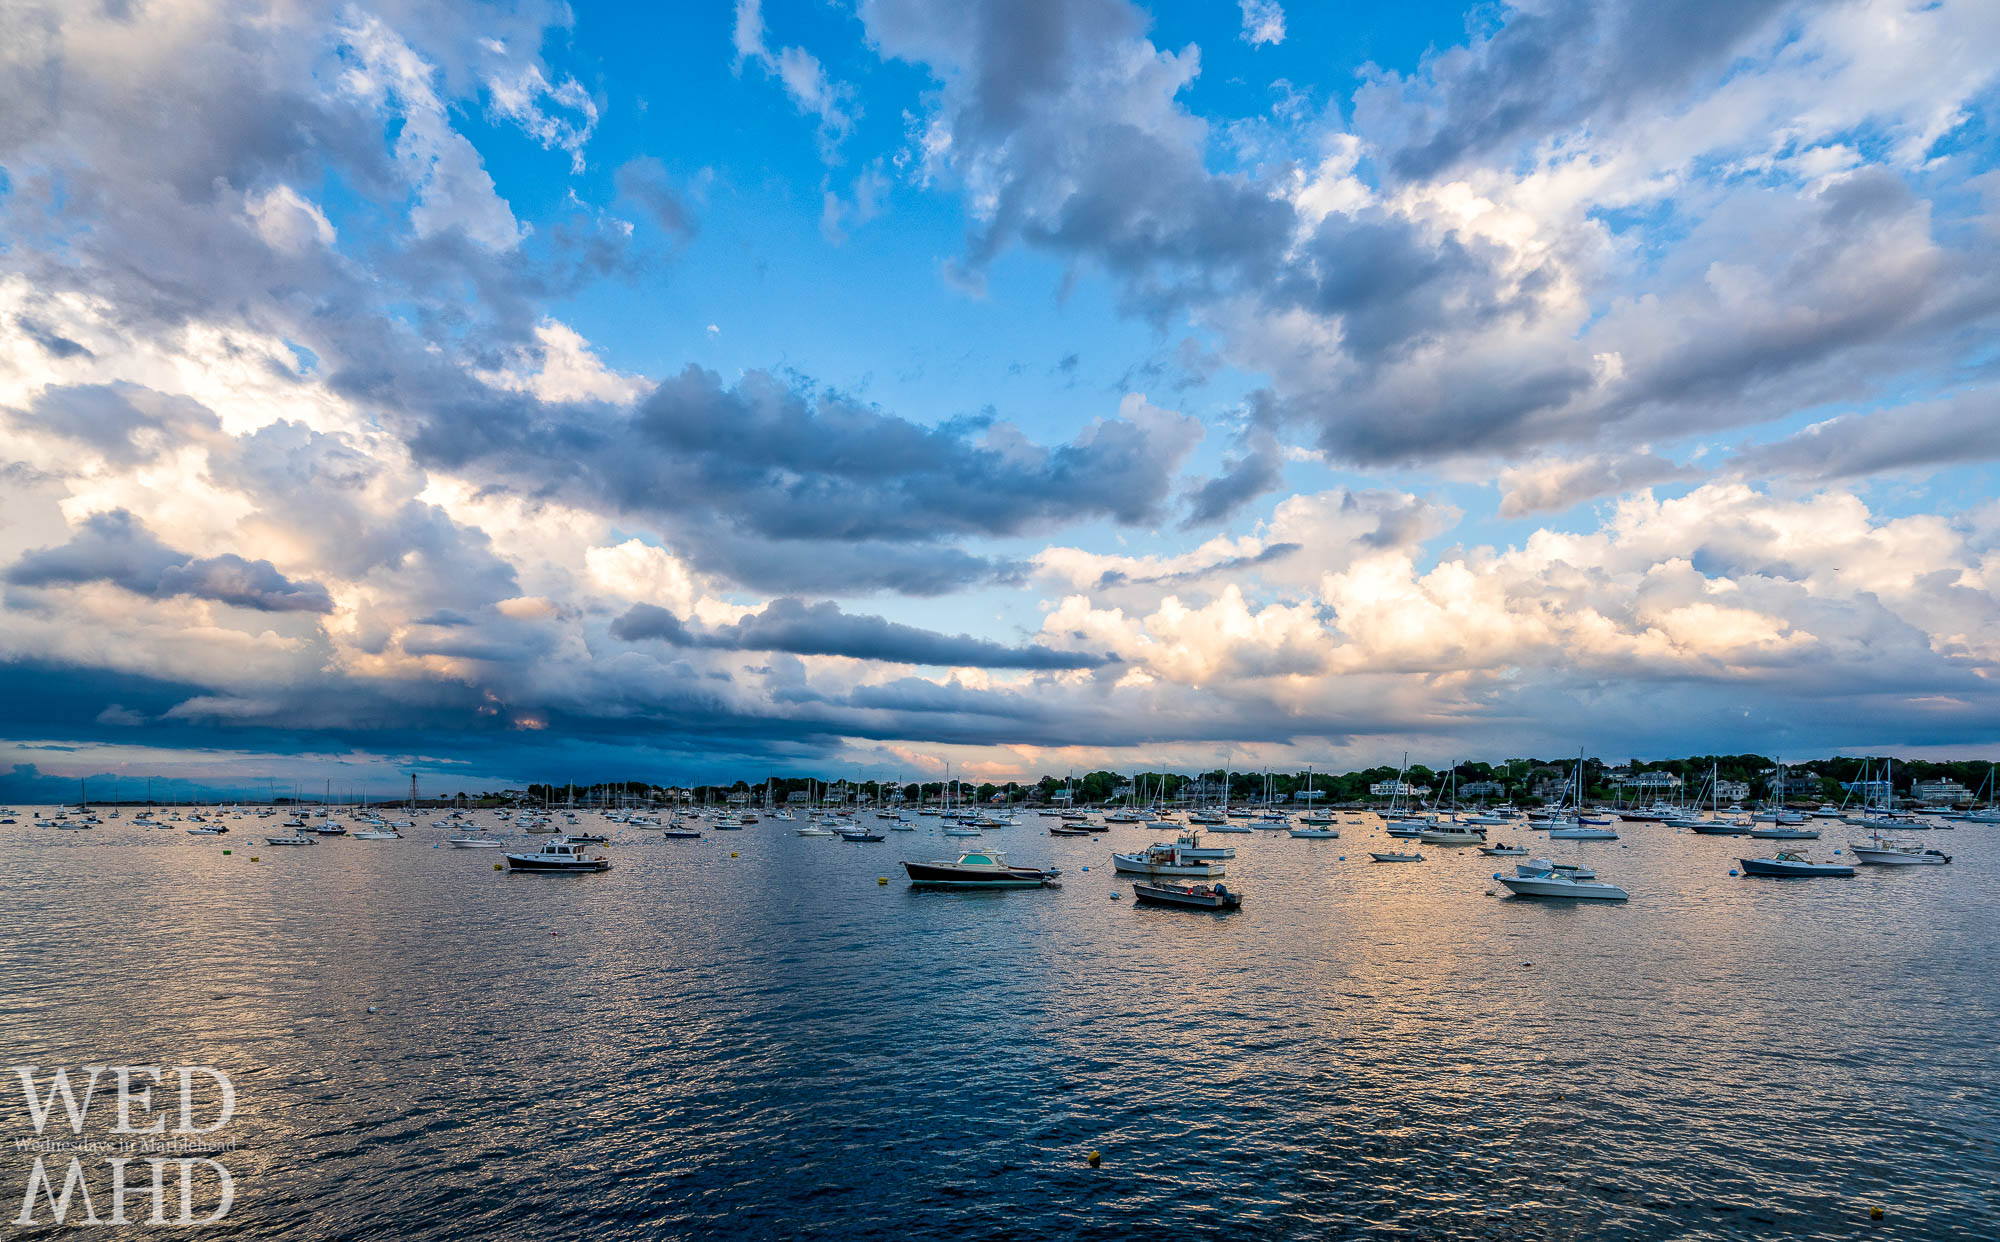 As a sunset takes shape over Marblehead Harbor, I swapped for my widest lens in the hopes of taking it all in